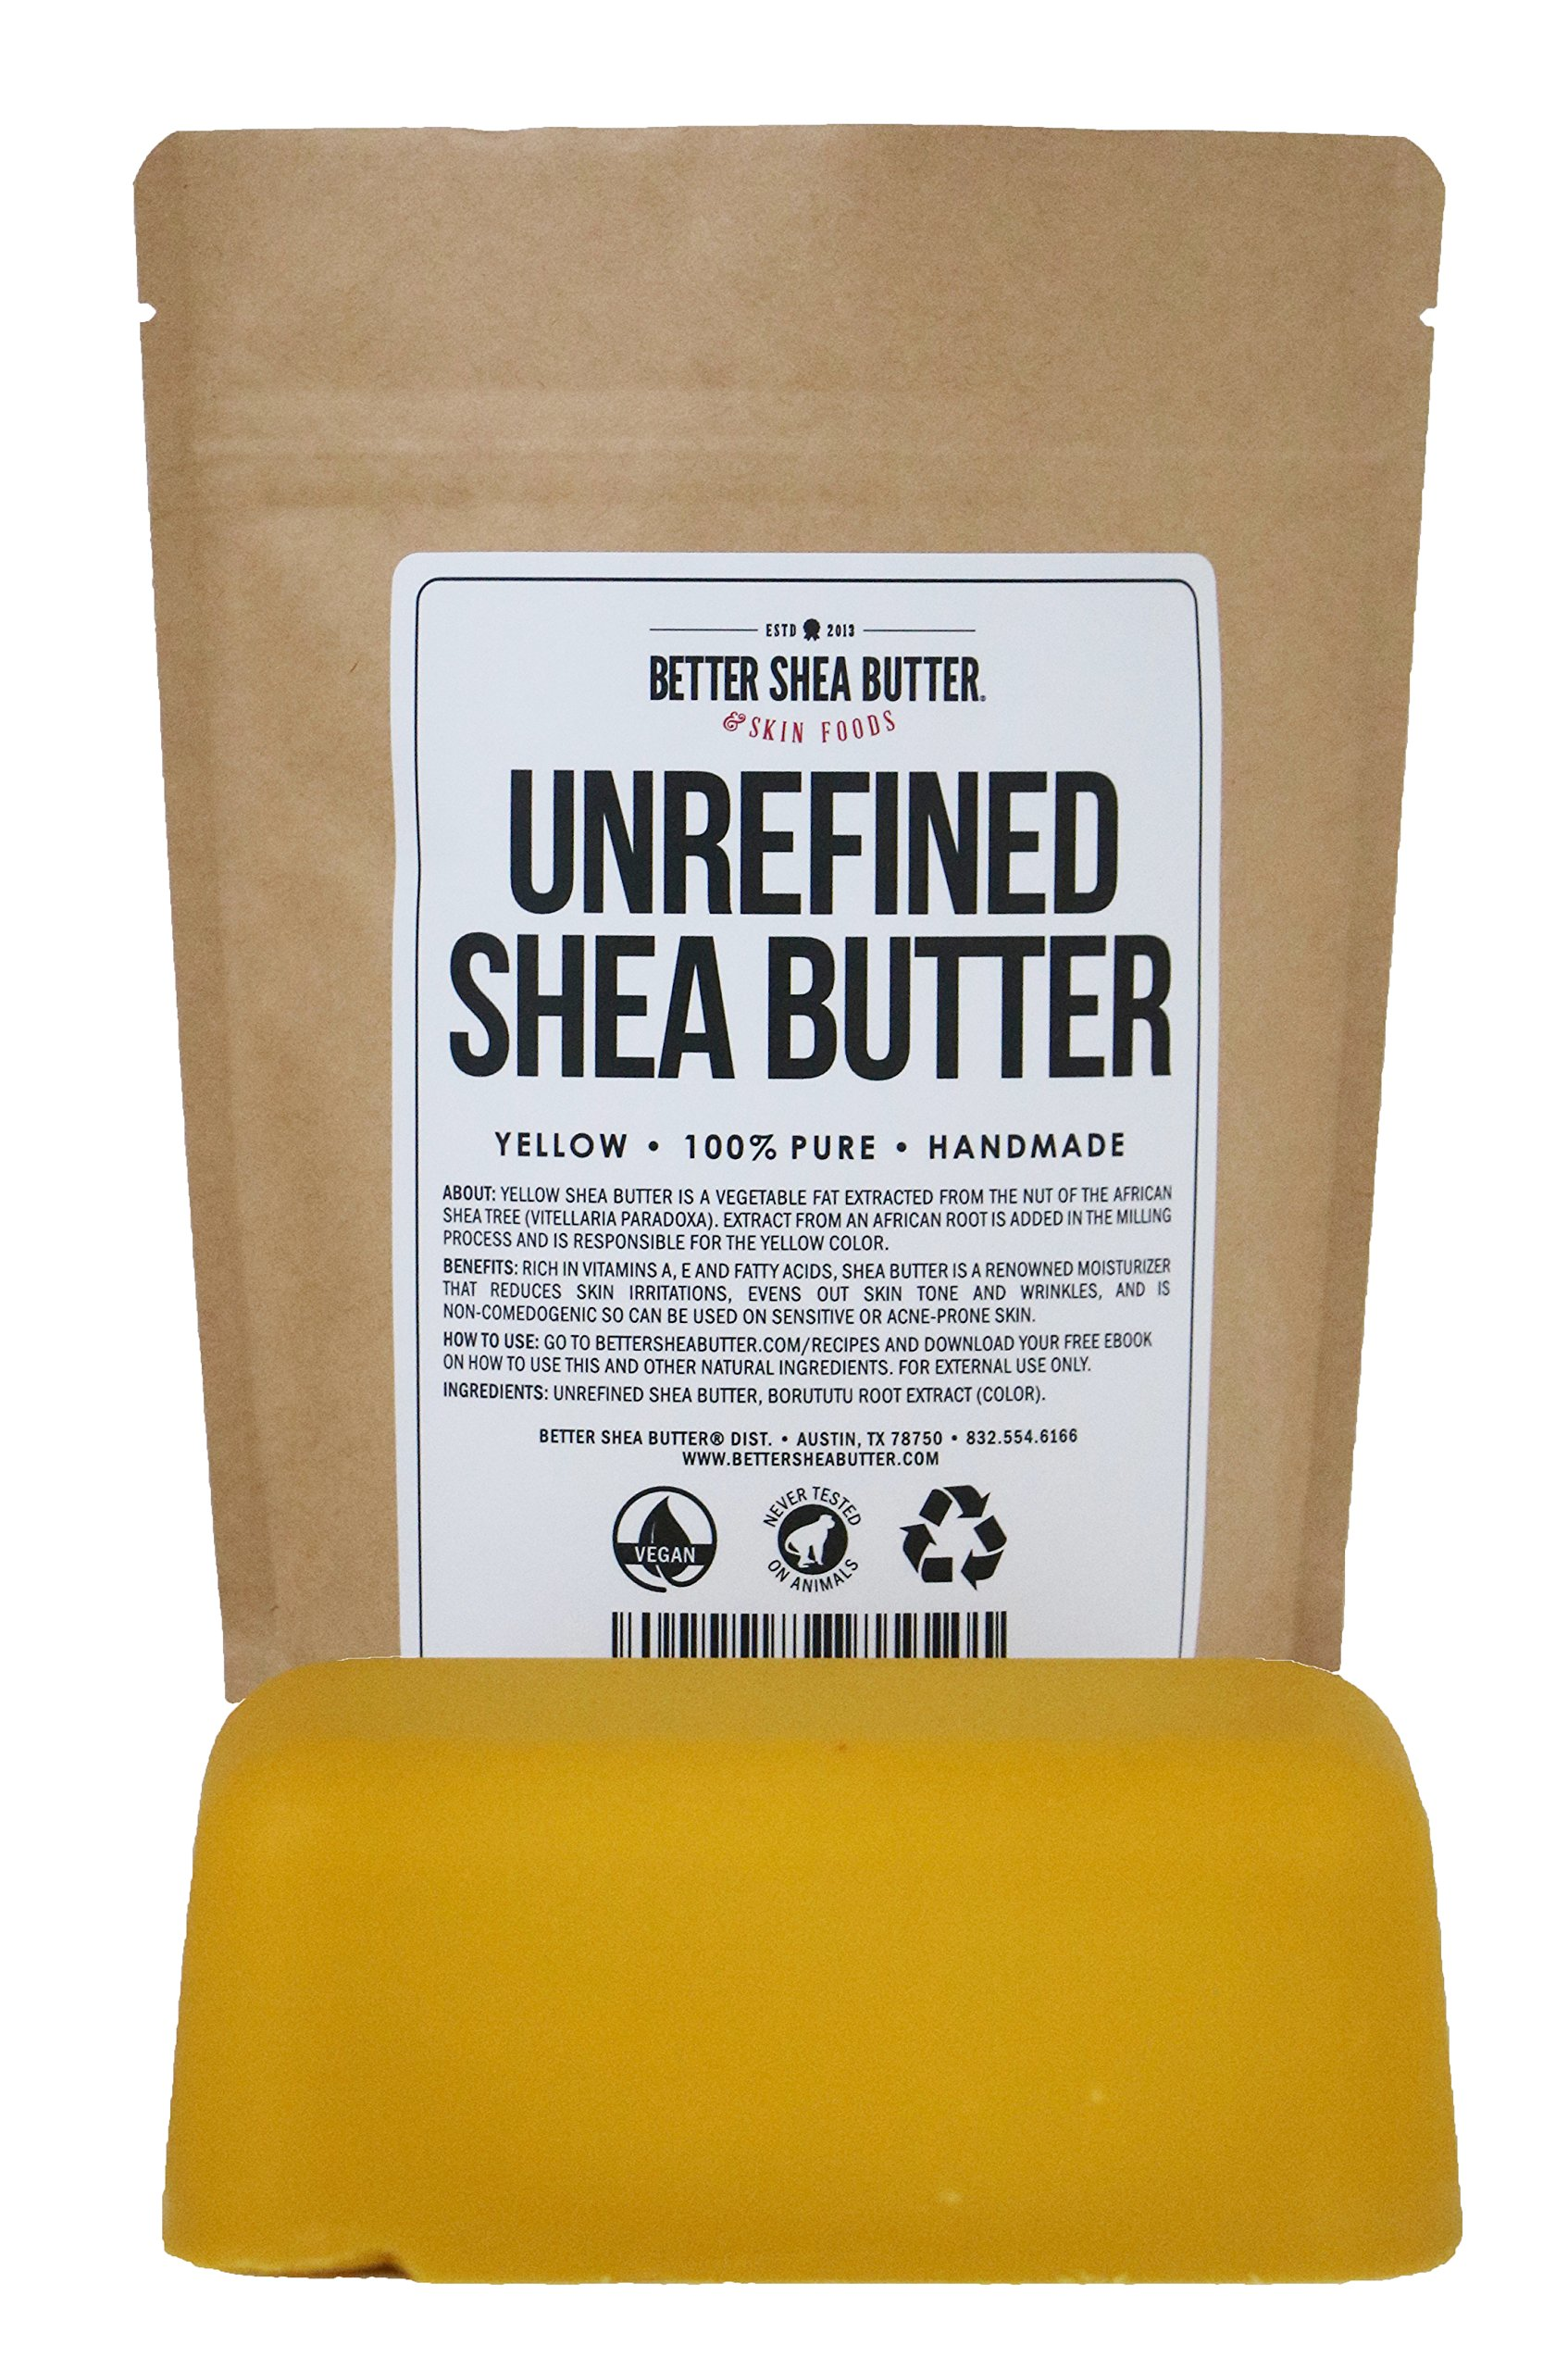 Yellow Shea Butter by Better Shea Butter - African, Raw, Pure - Use Alone or in DIY Body Butters, Lotions, Soap, Eczema & Stretch Marks Products, Lotion Bars, Lip Balms and More! - 1 lb (16 oz)